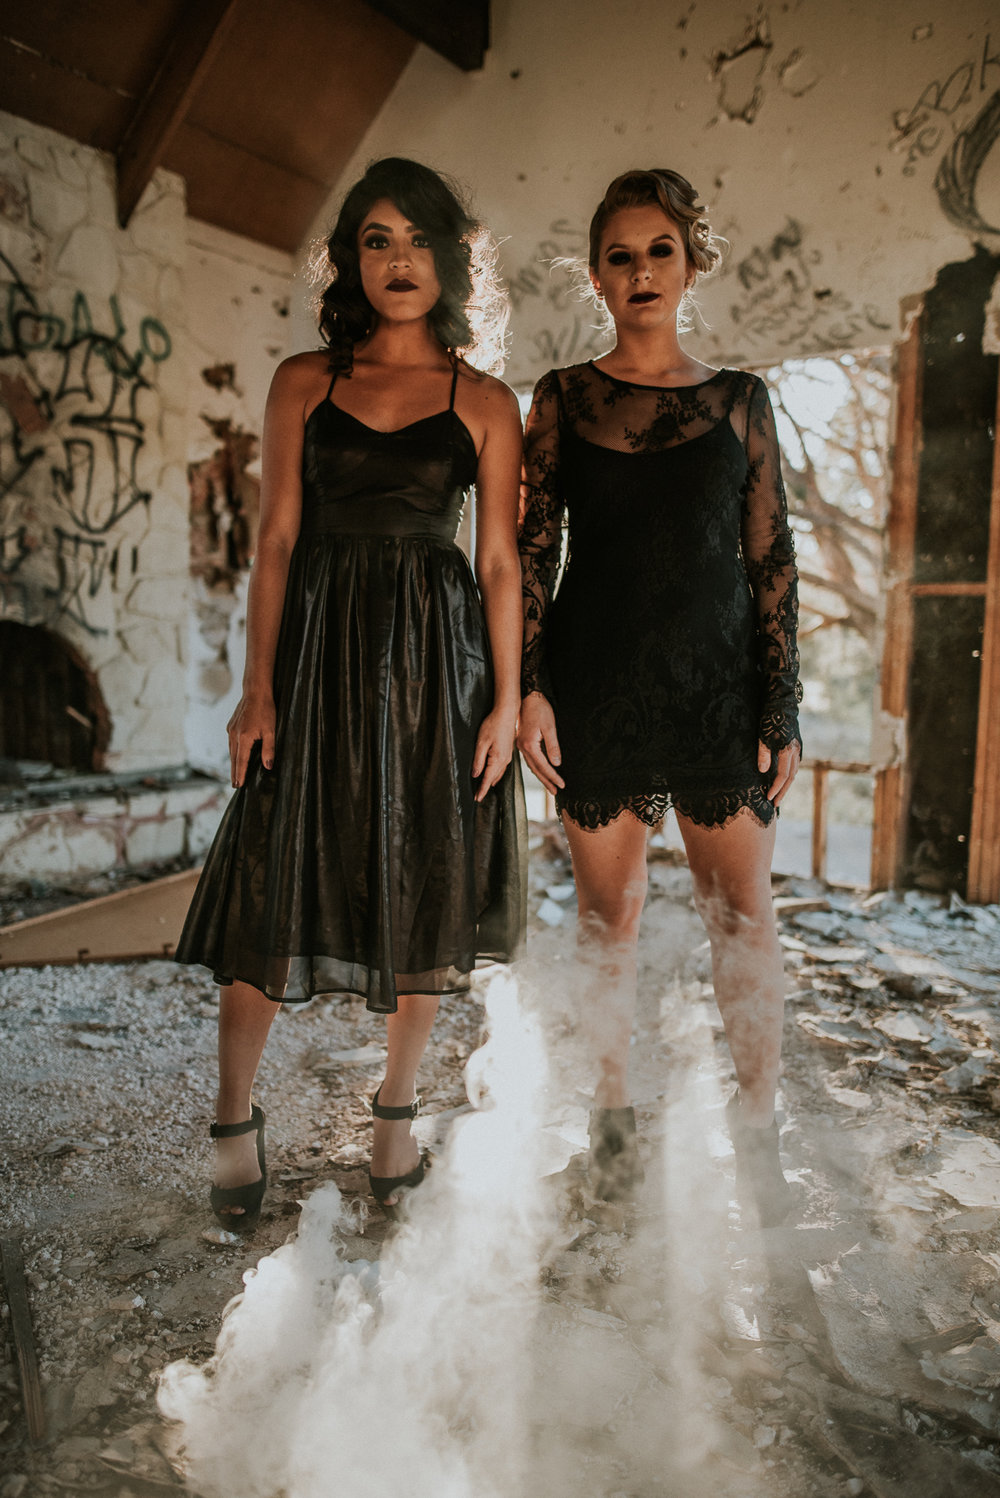 American Horror Story Styled Shoot in Phoenix AZ